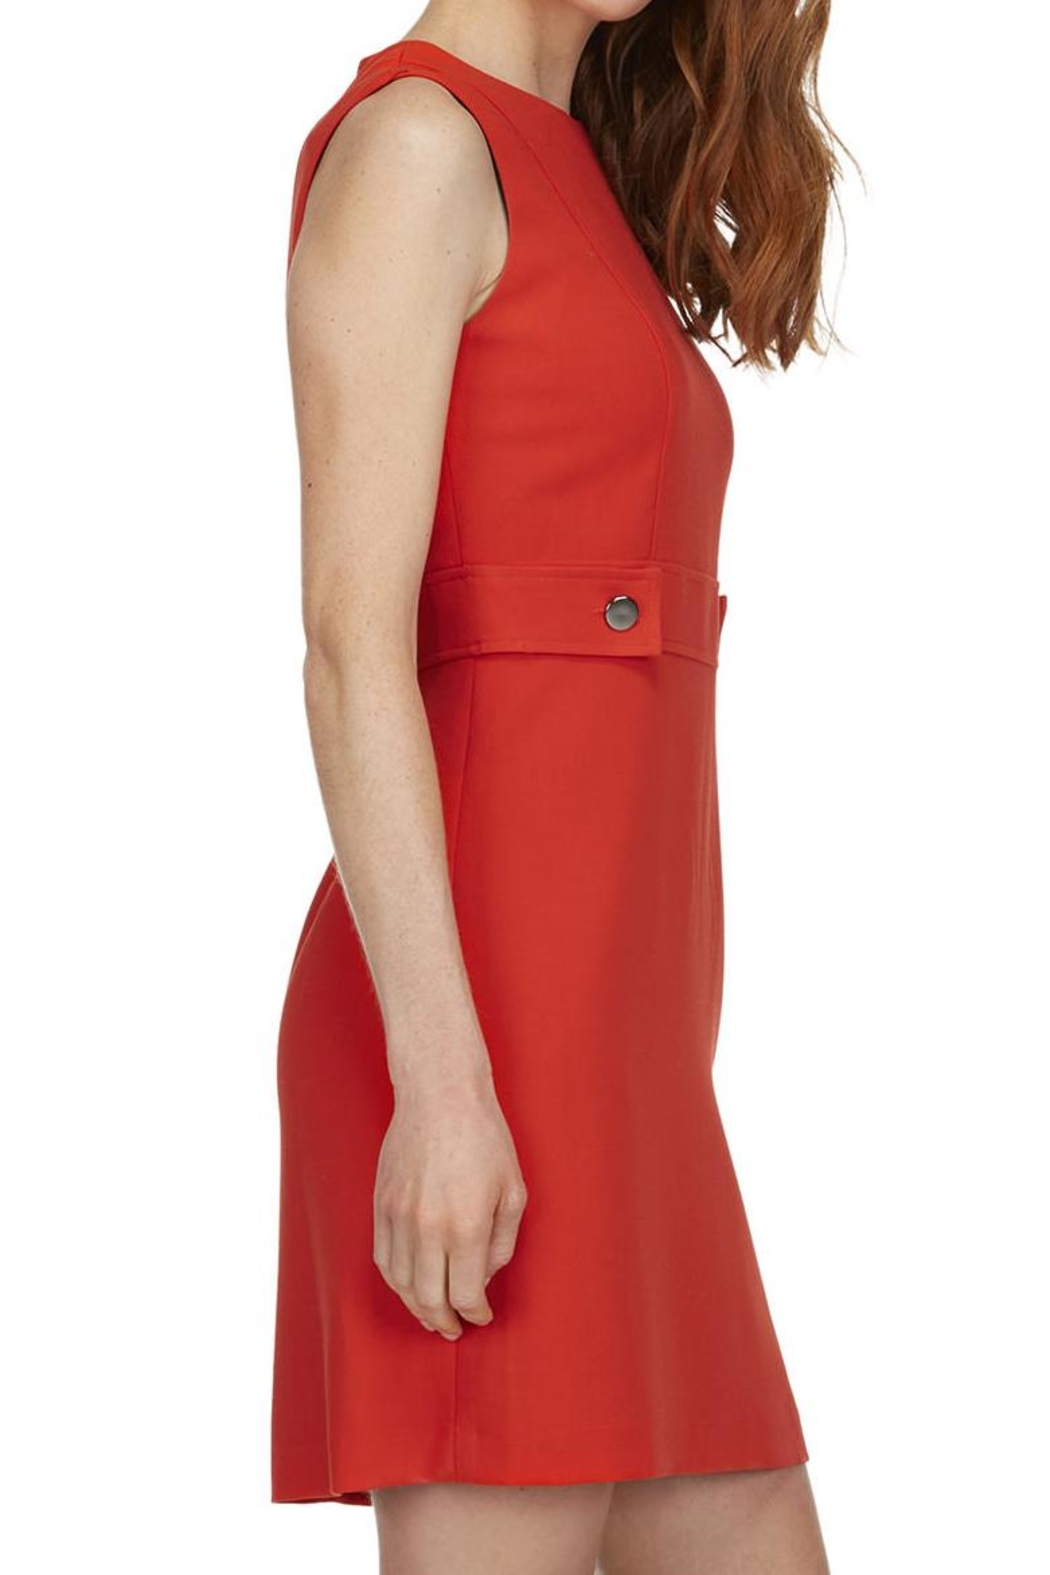 TRISTAN Red Sleeveless Dress - Side Cropped Image